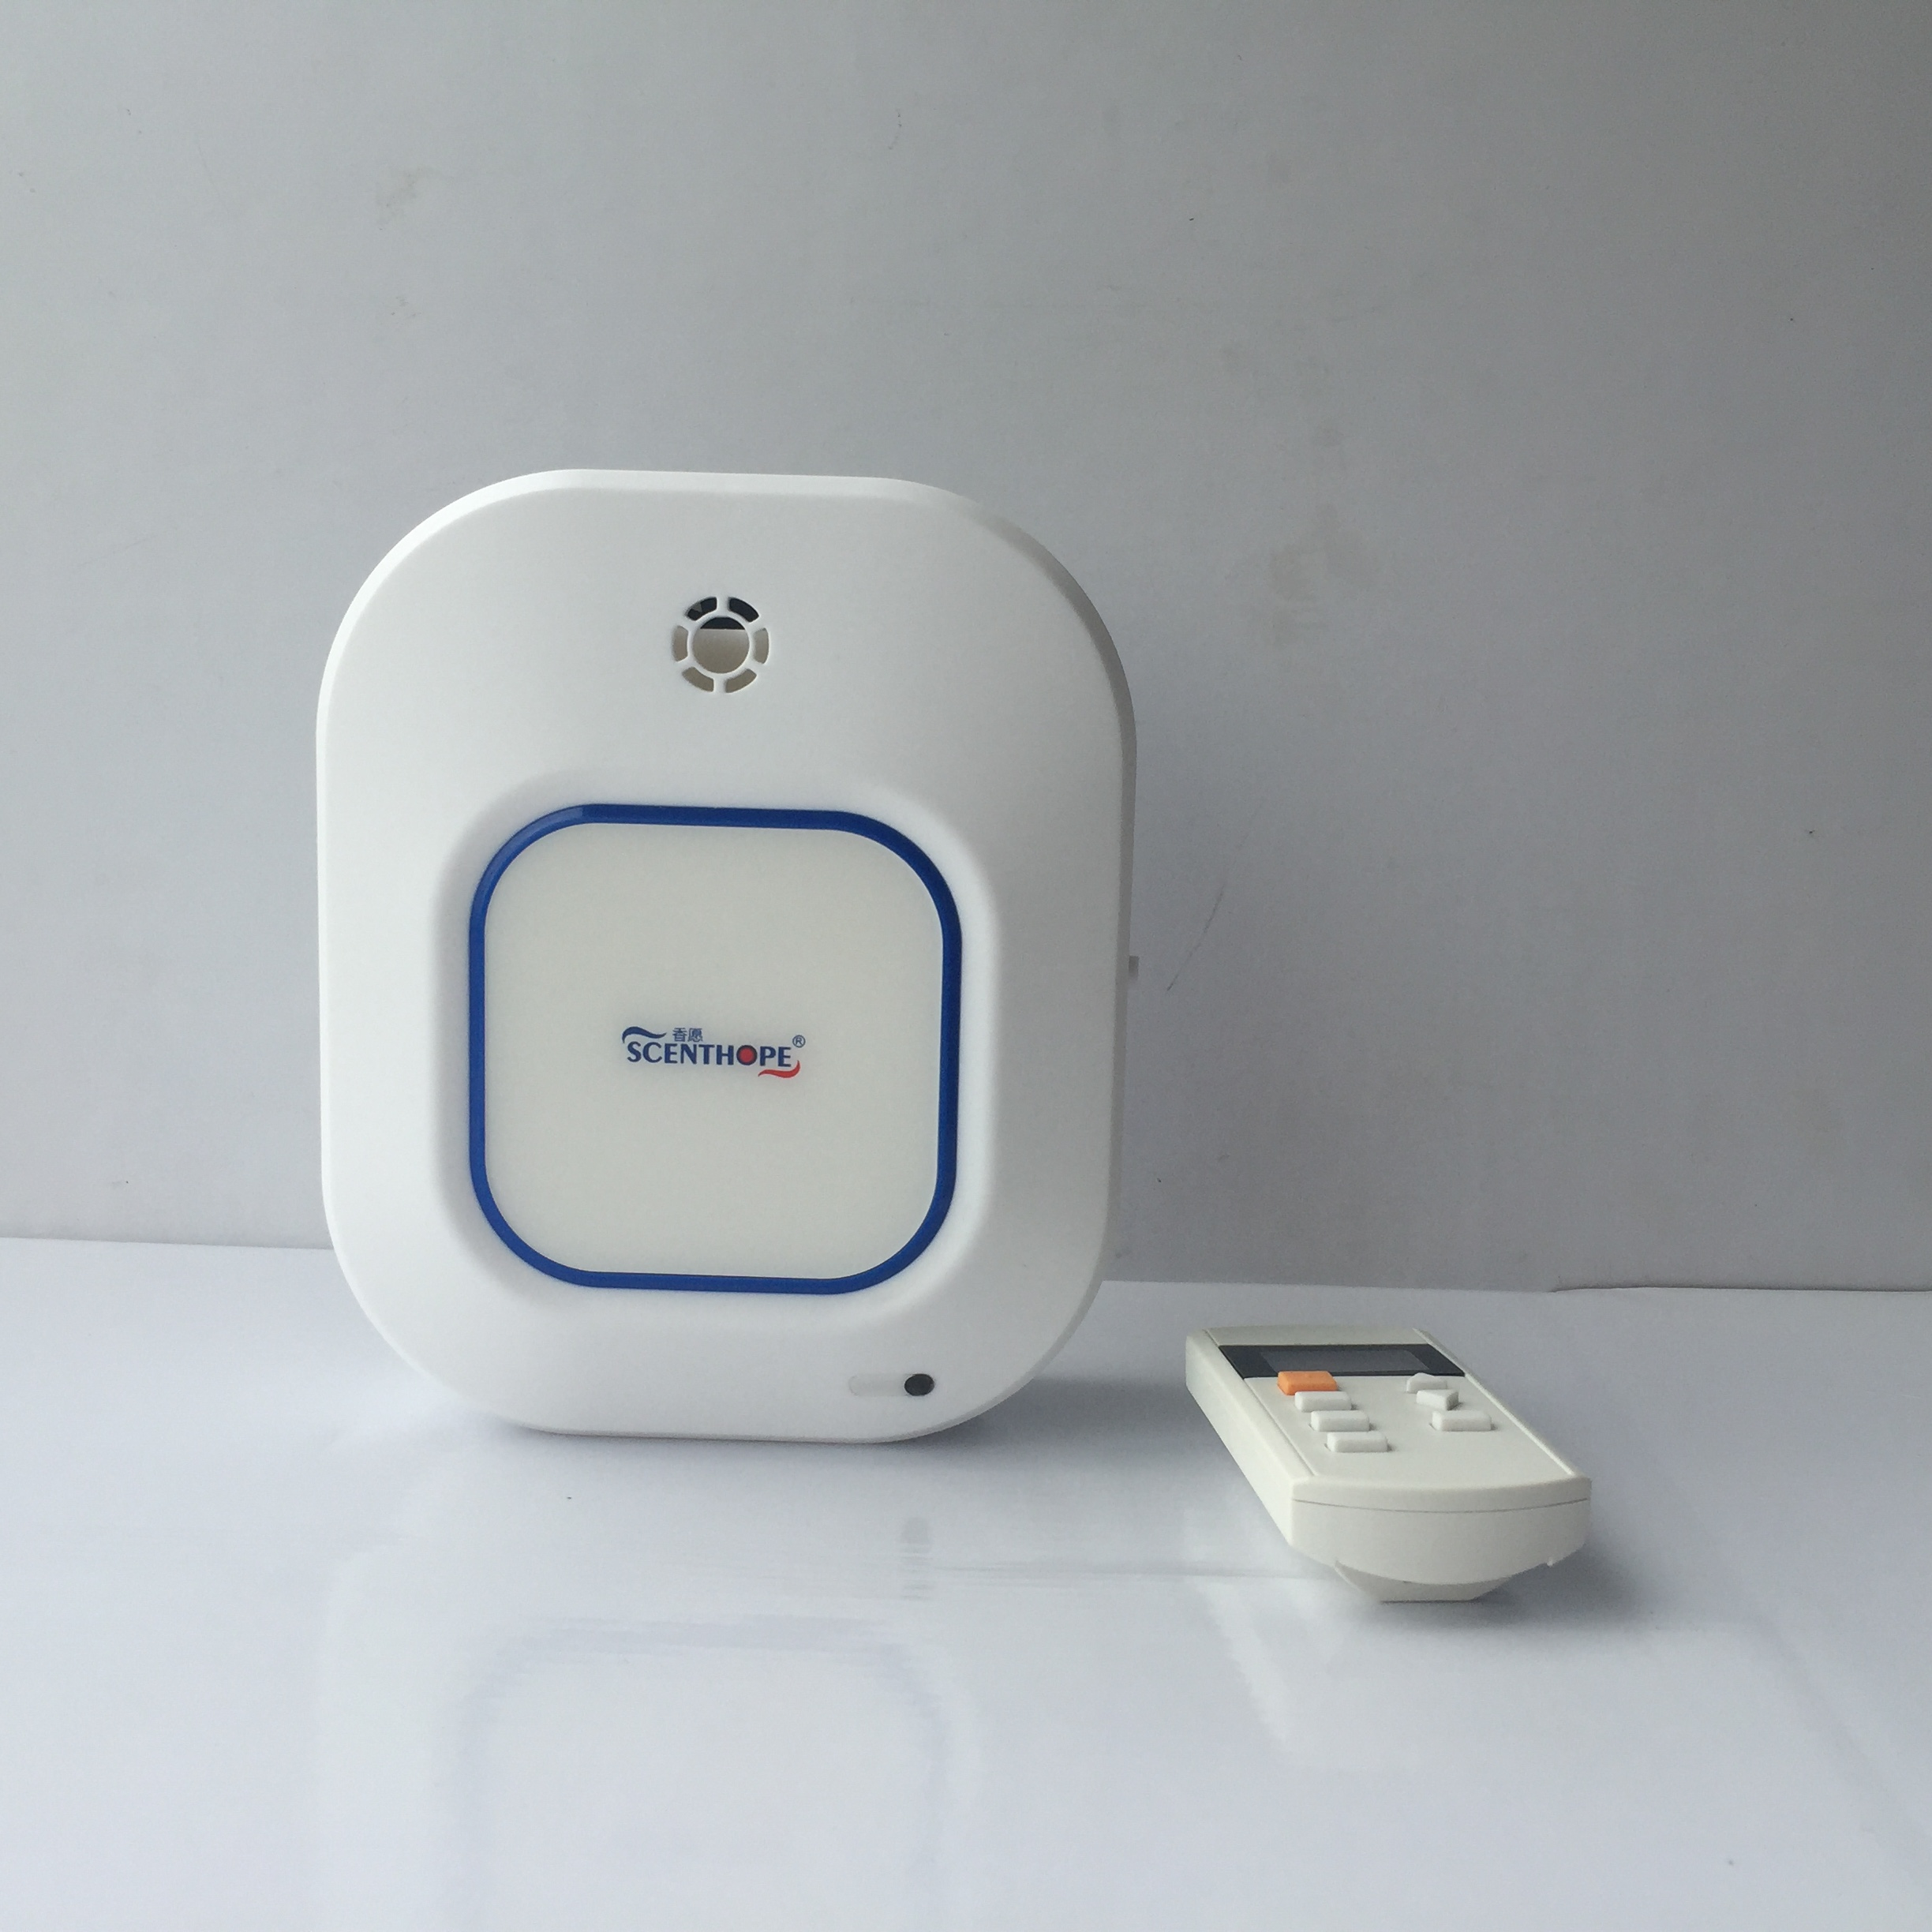 Hotel Room Aromatherapy Diffuser Machine Battery Operating Aroma Diffuser Remote Control Aroma Duffusion System